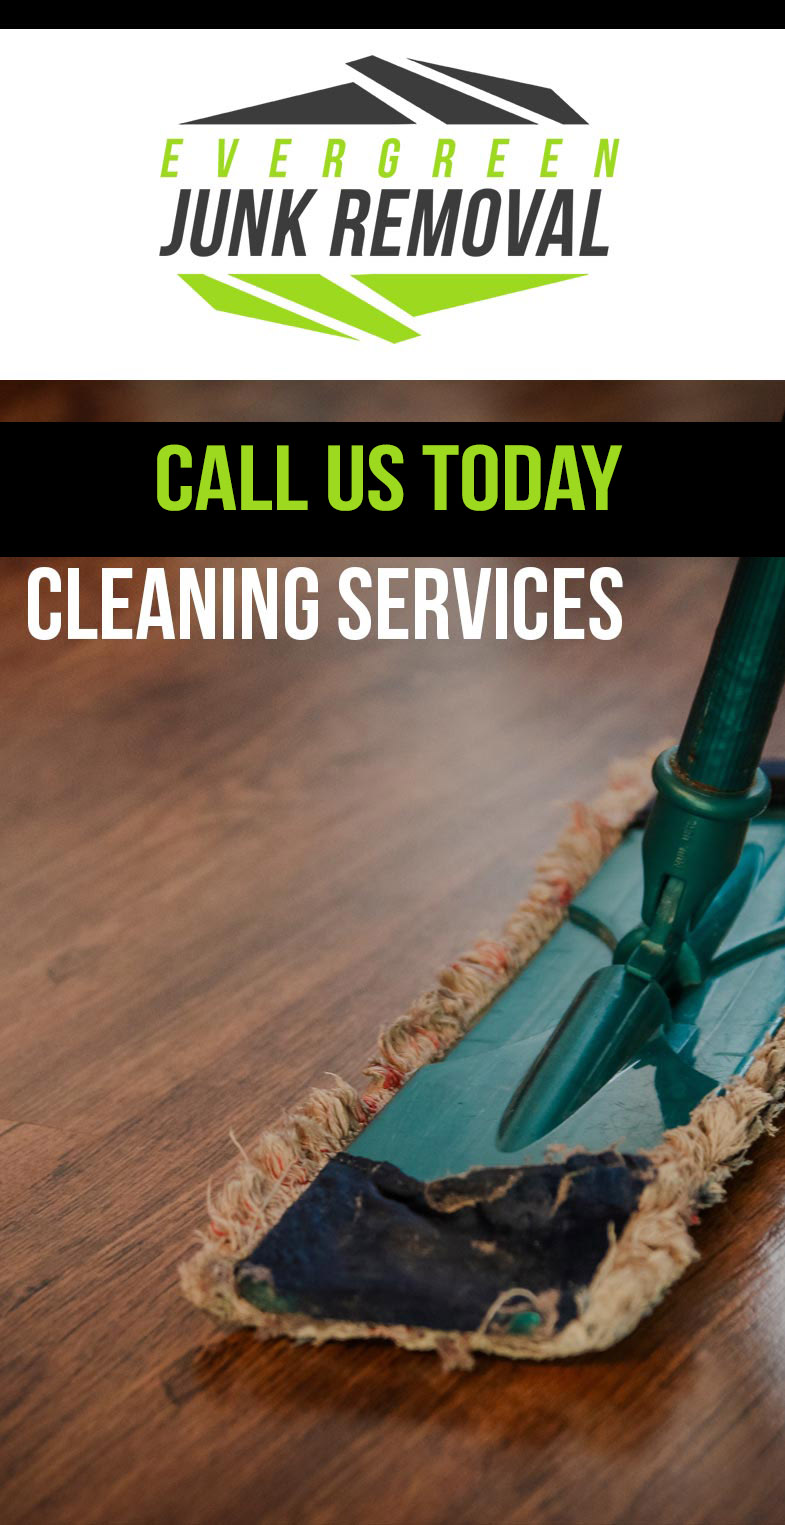 Palm Springs Florida Maid Services